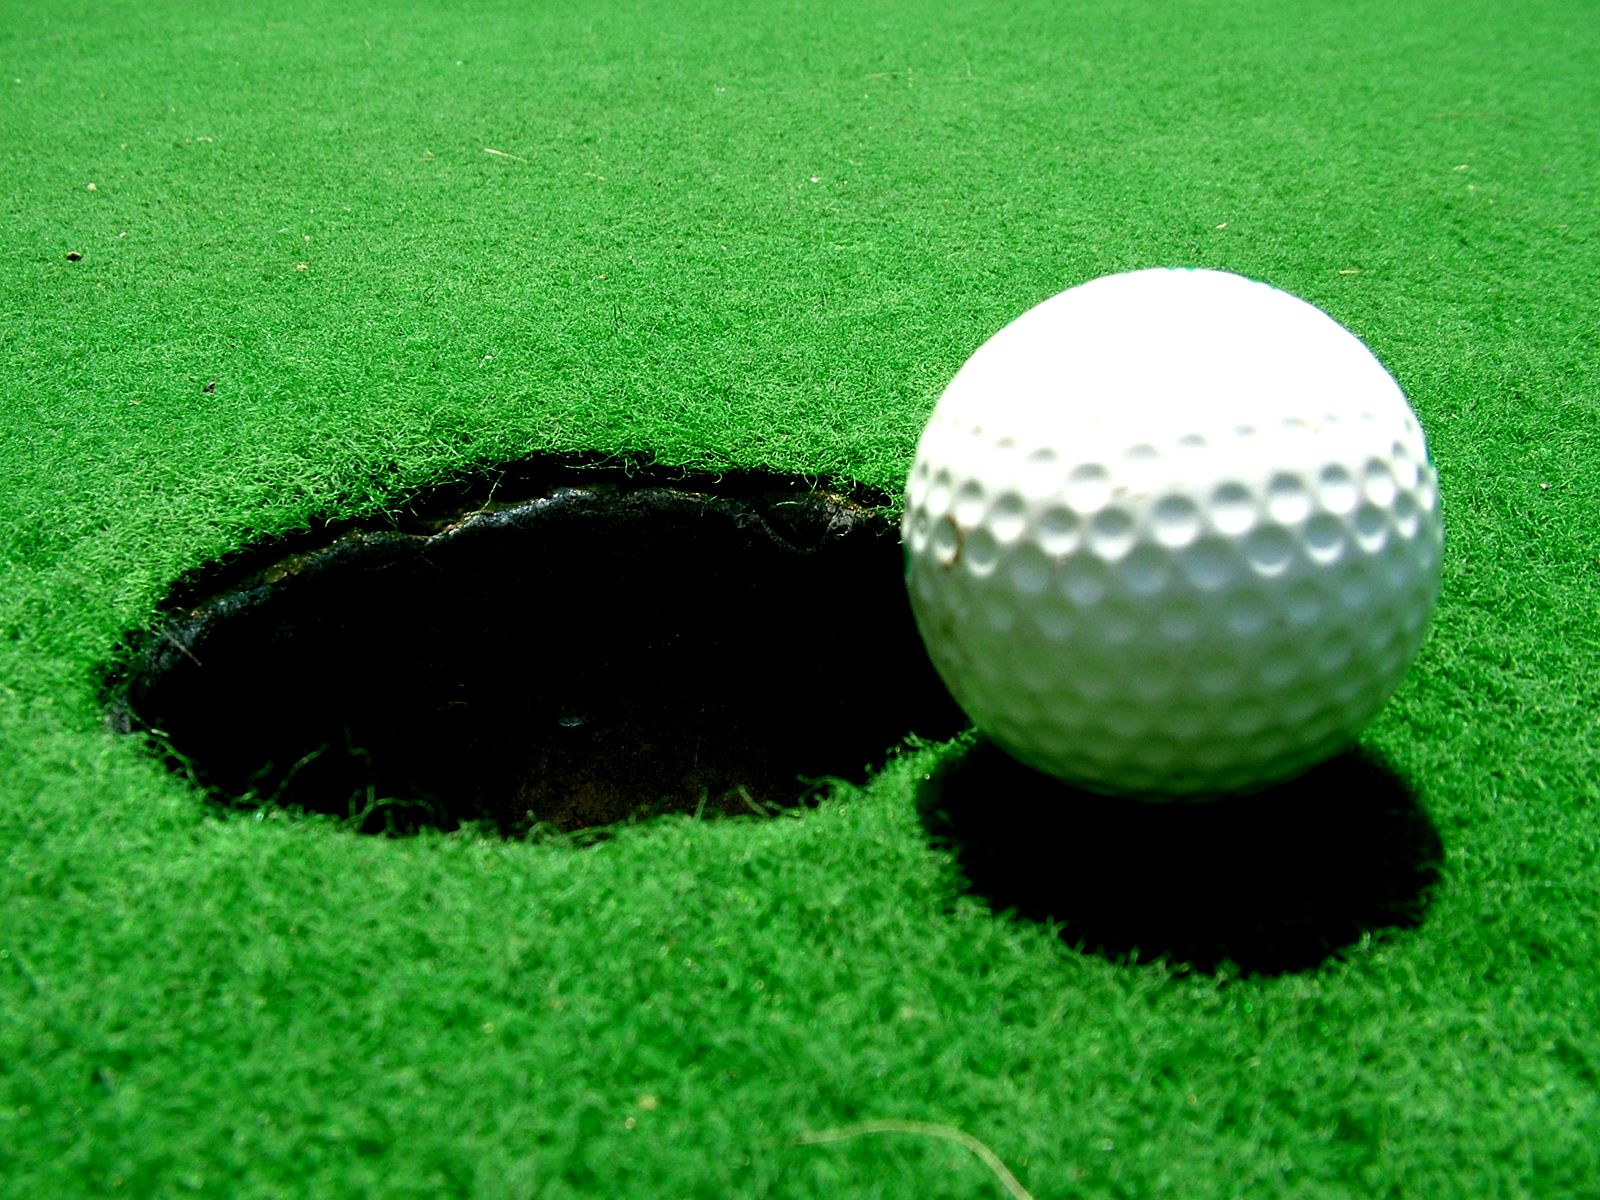 Kern County Board to consider easing lease agreement on golf course